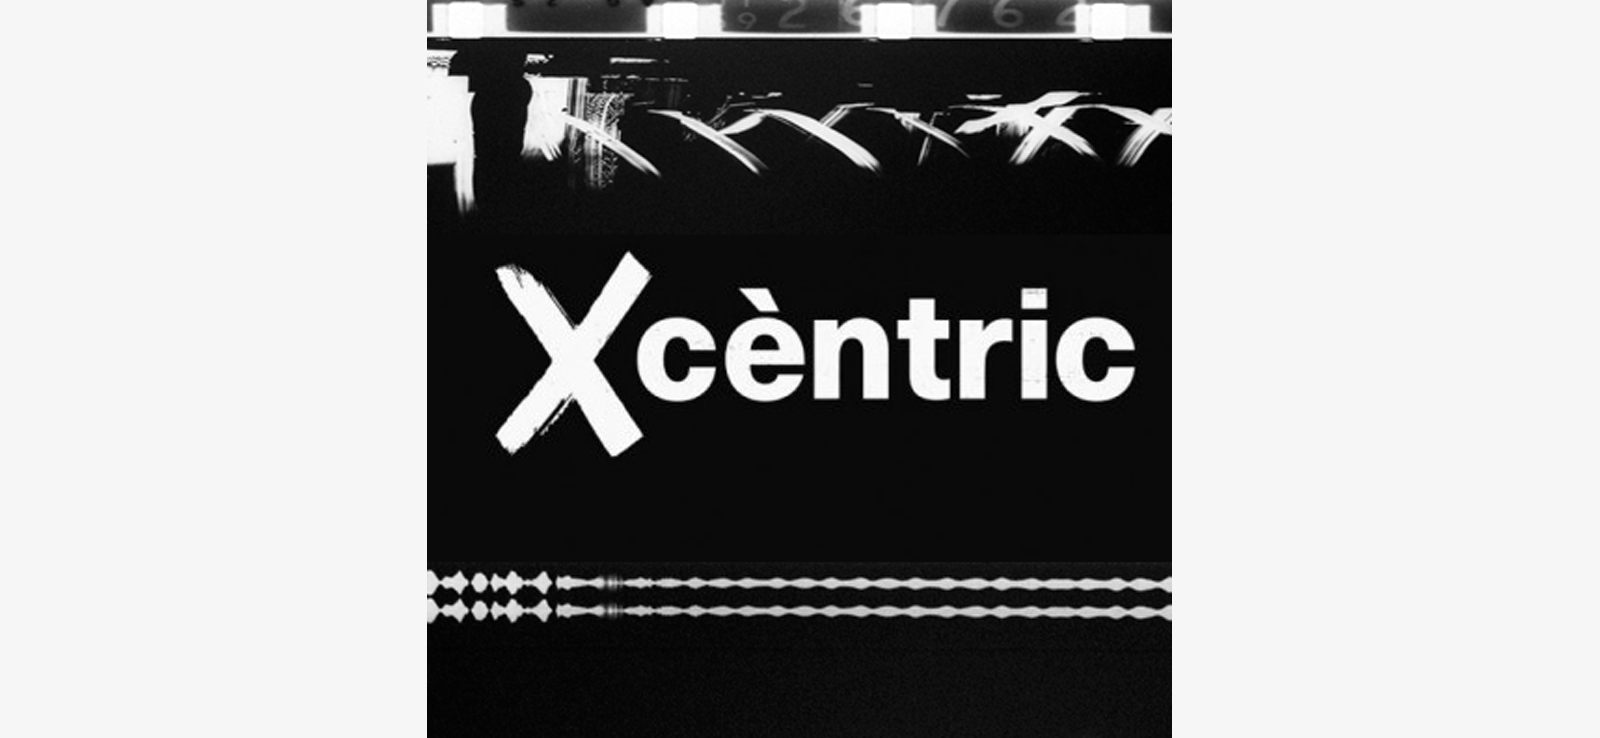 Antoni-Pinent-curator-Cinema-Invisible-Xcentric's-Section